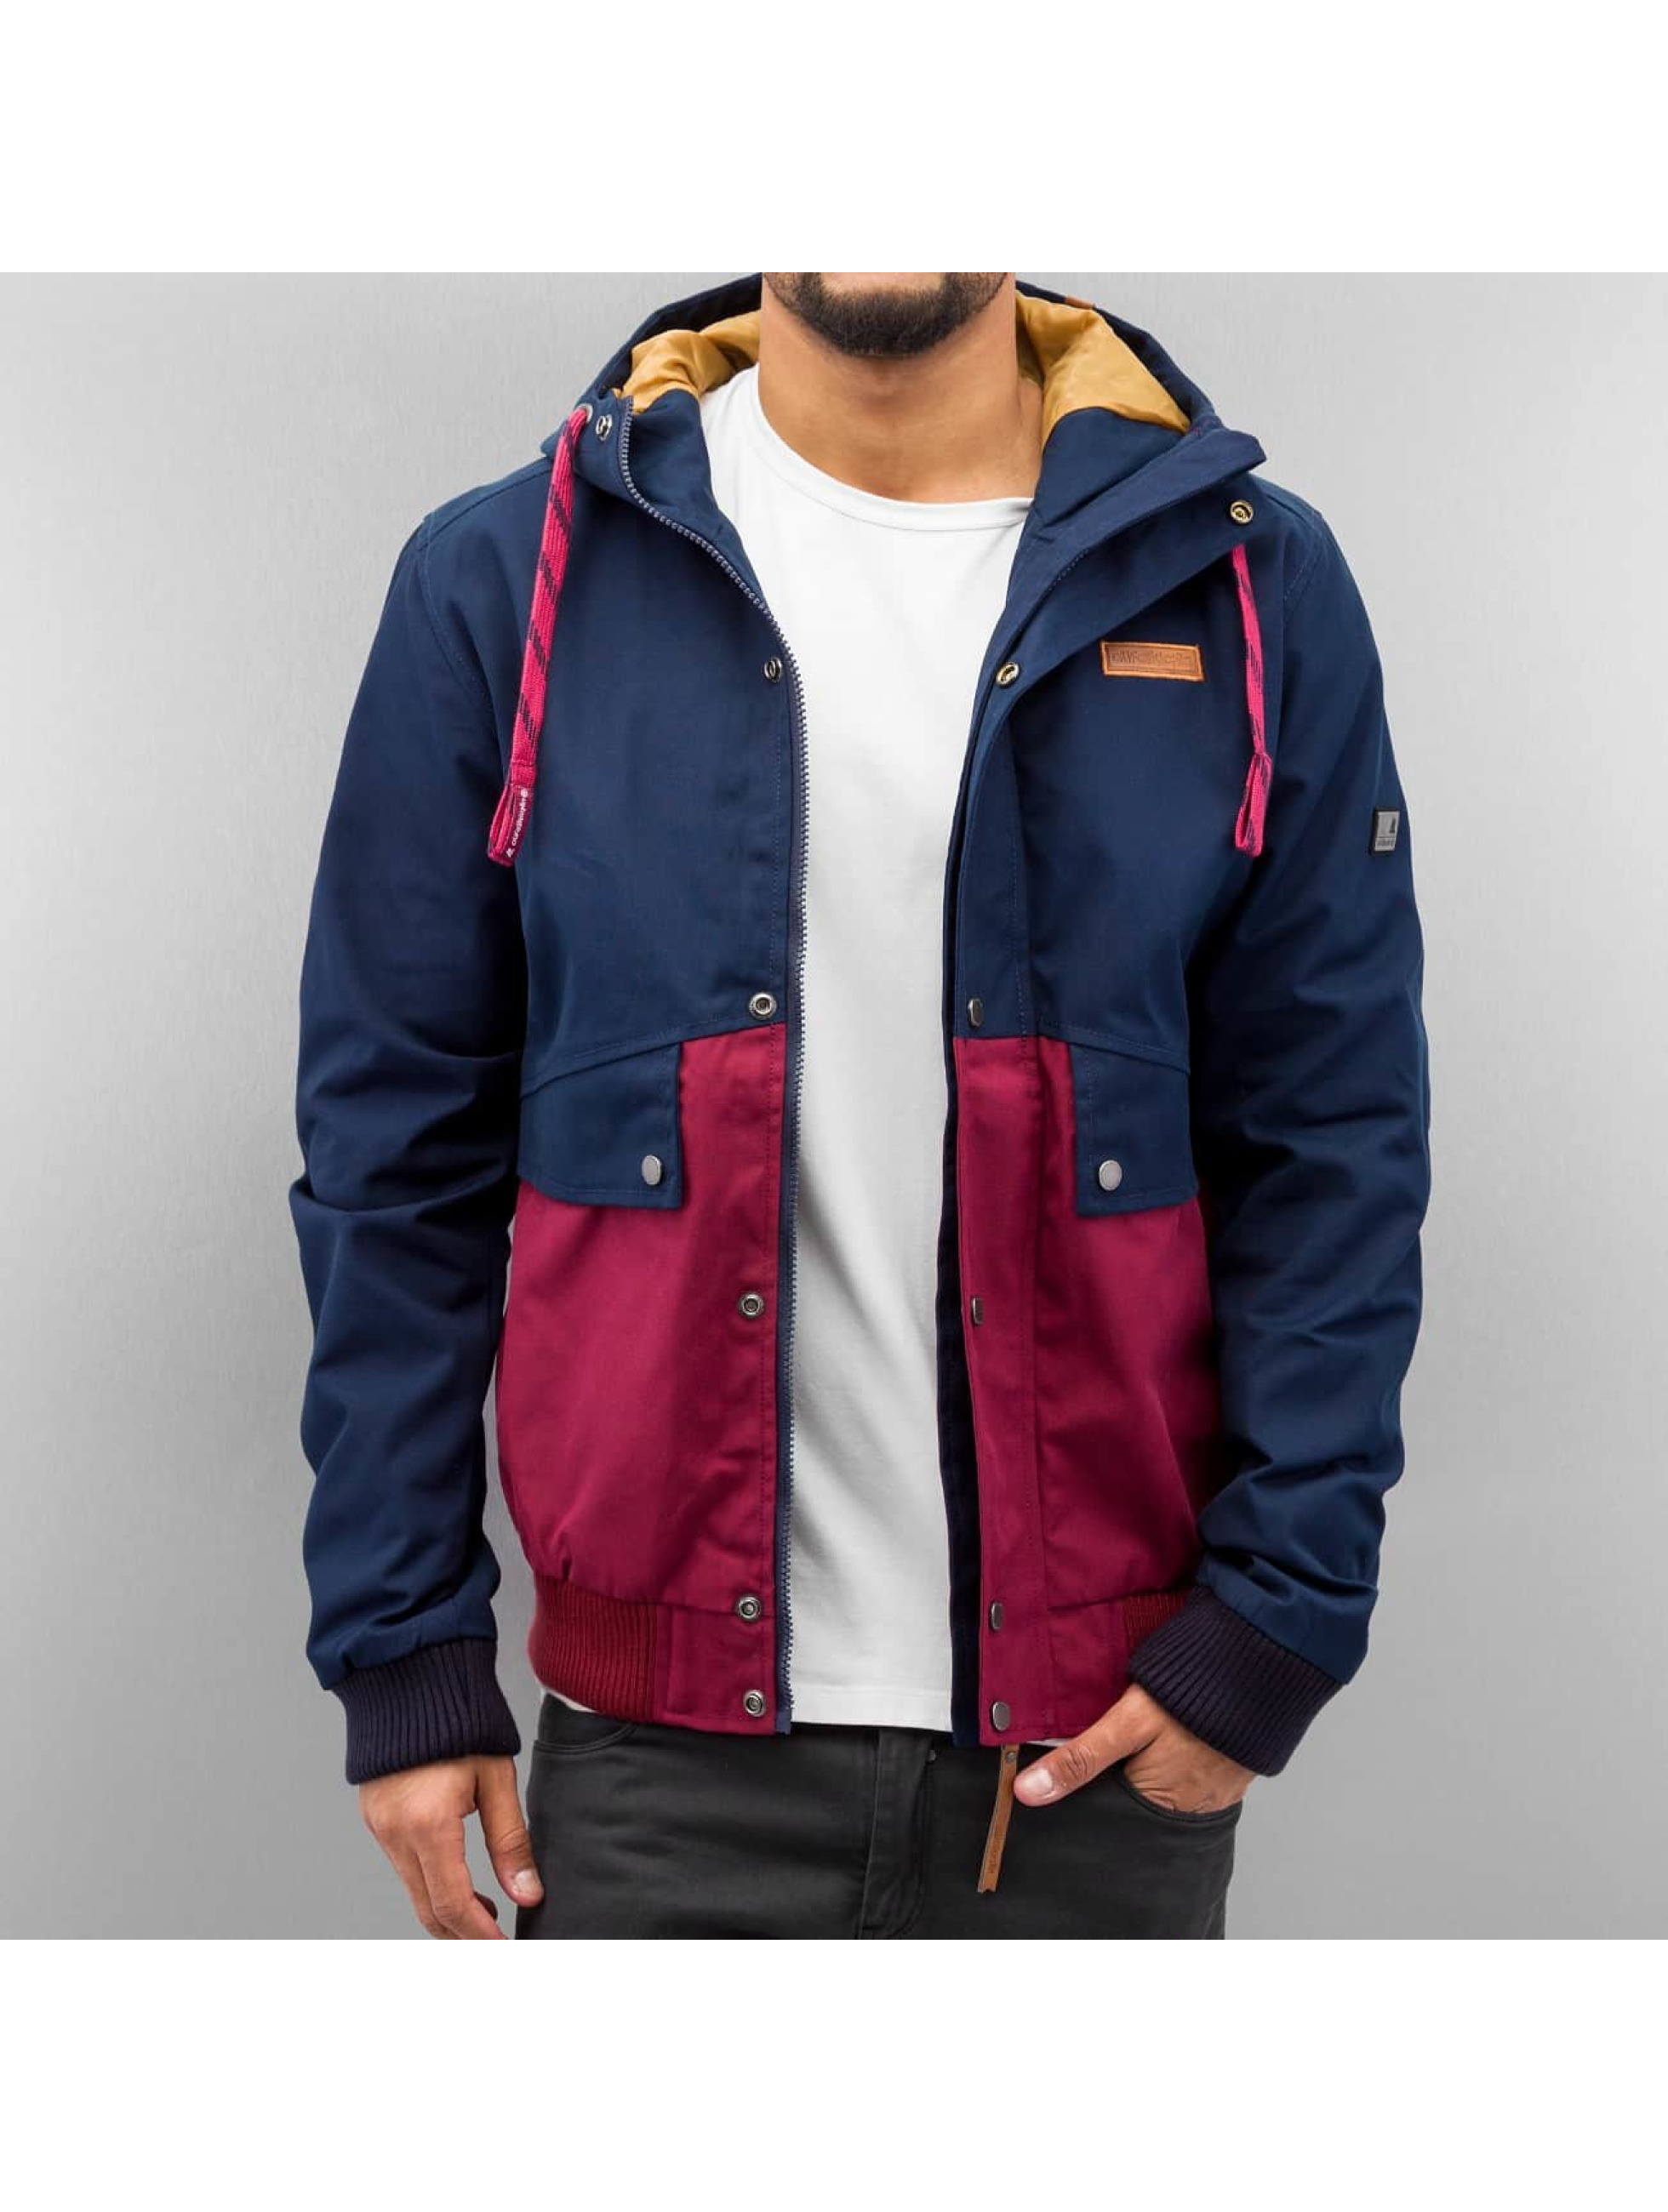 Alife Kickin Tom Jacket Marine Burgundy